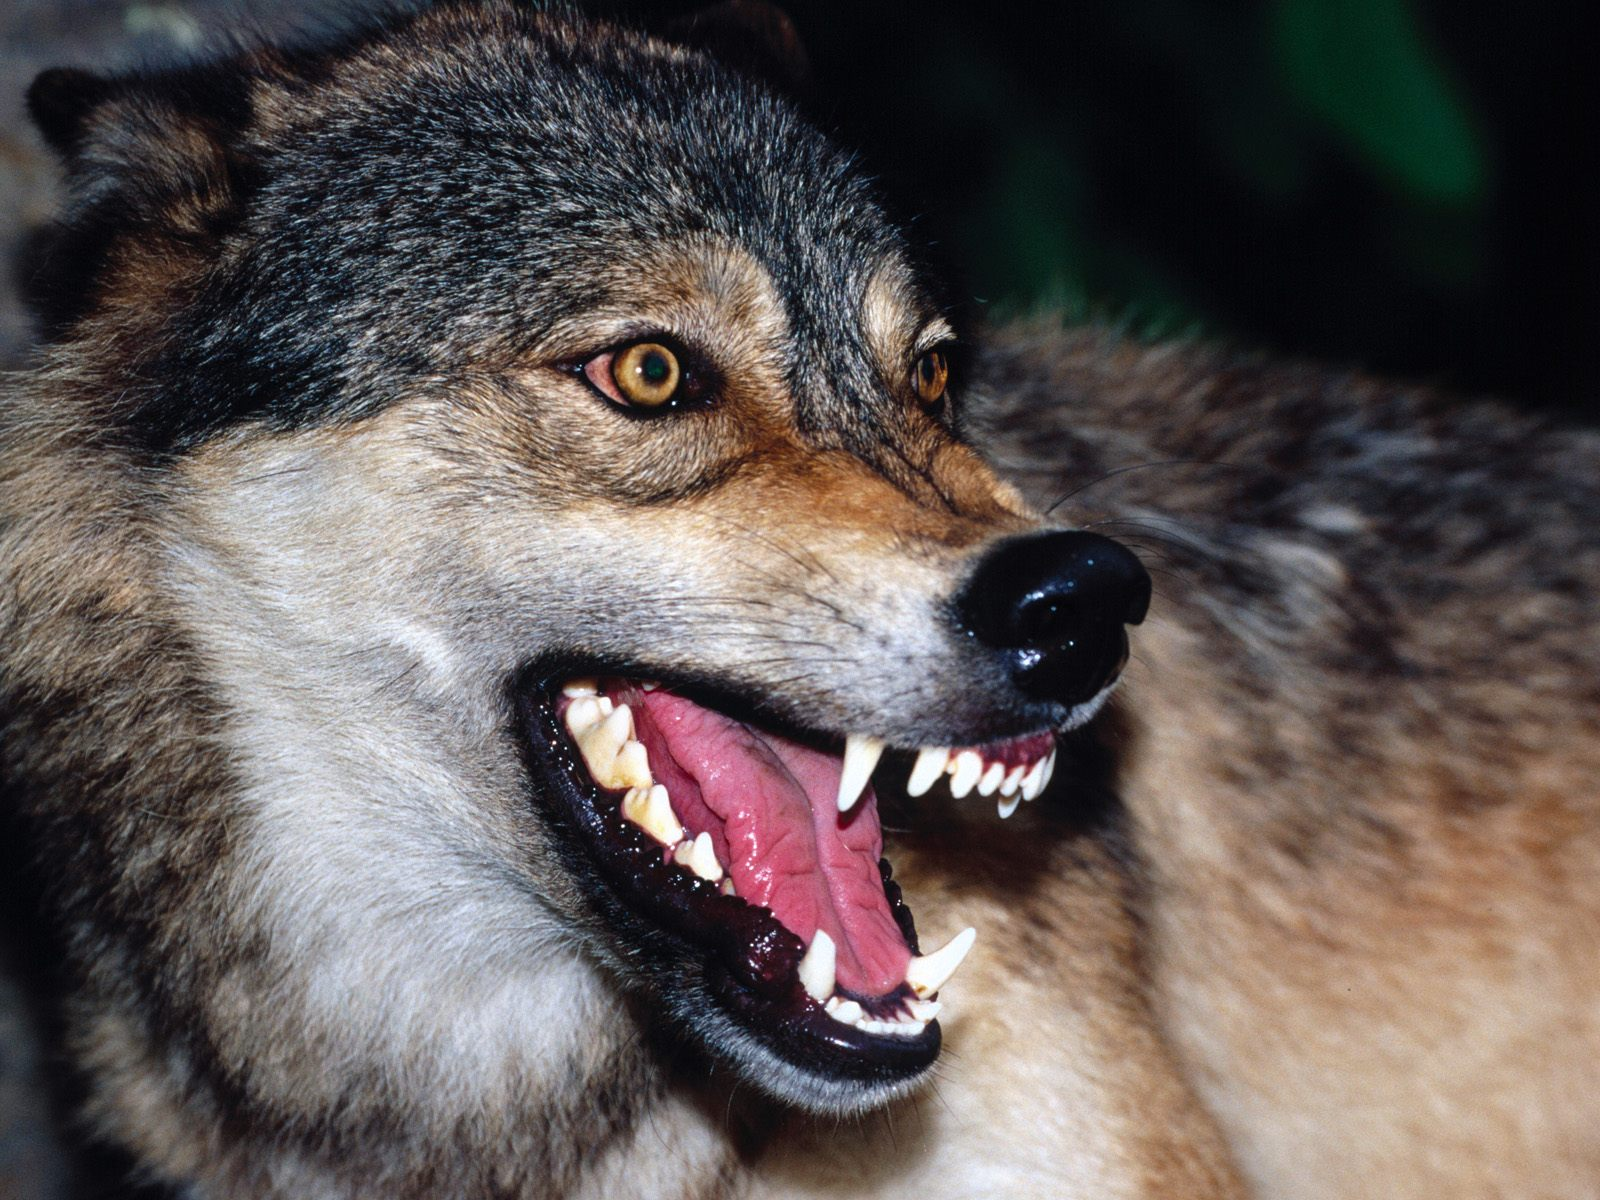 Snarling-Wolf | The Daily Sheeple